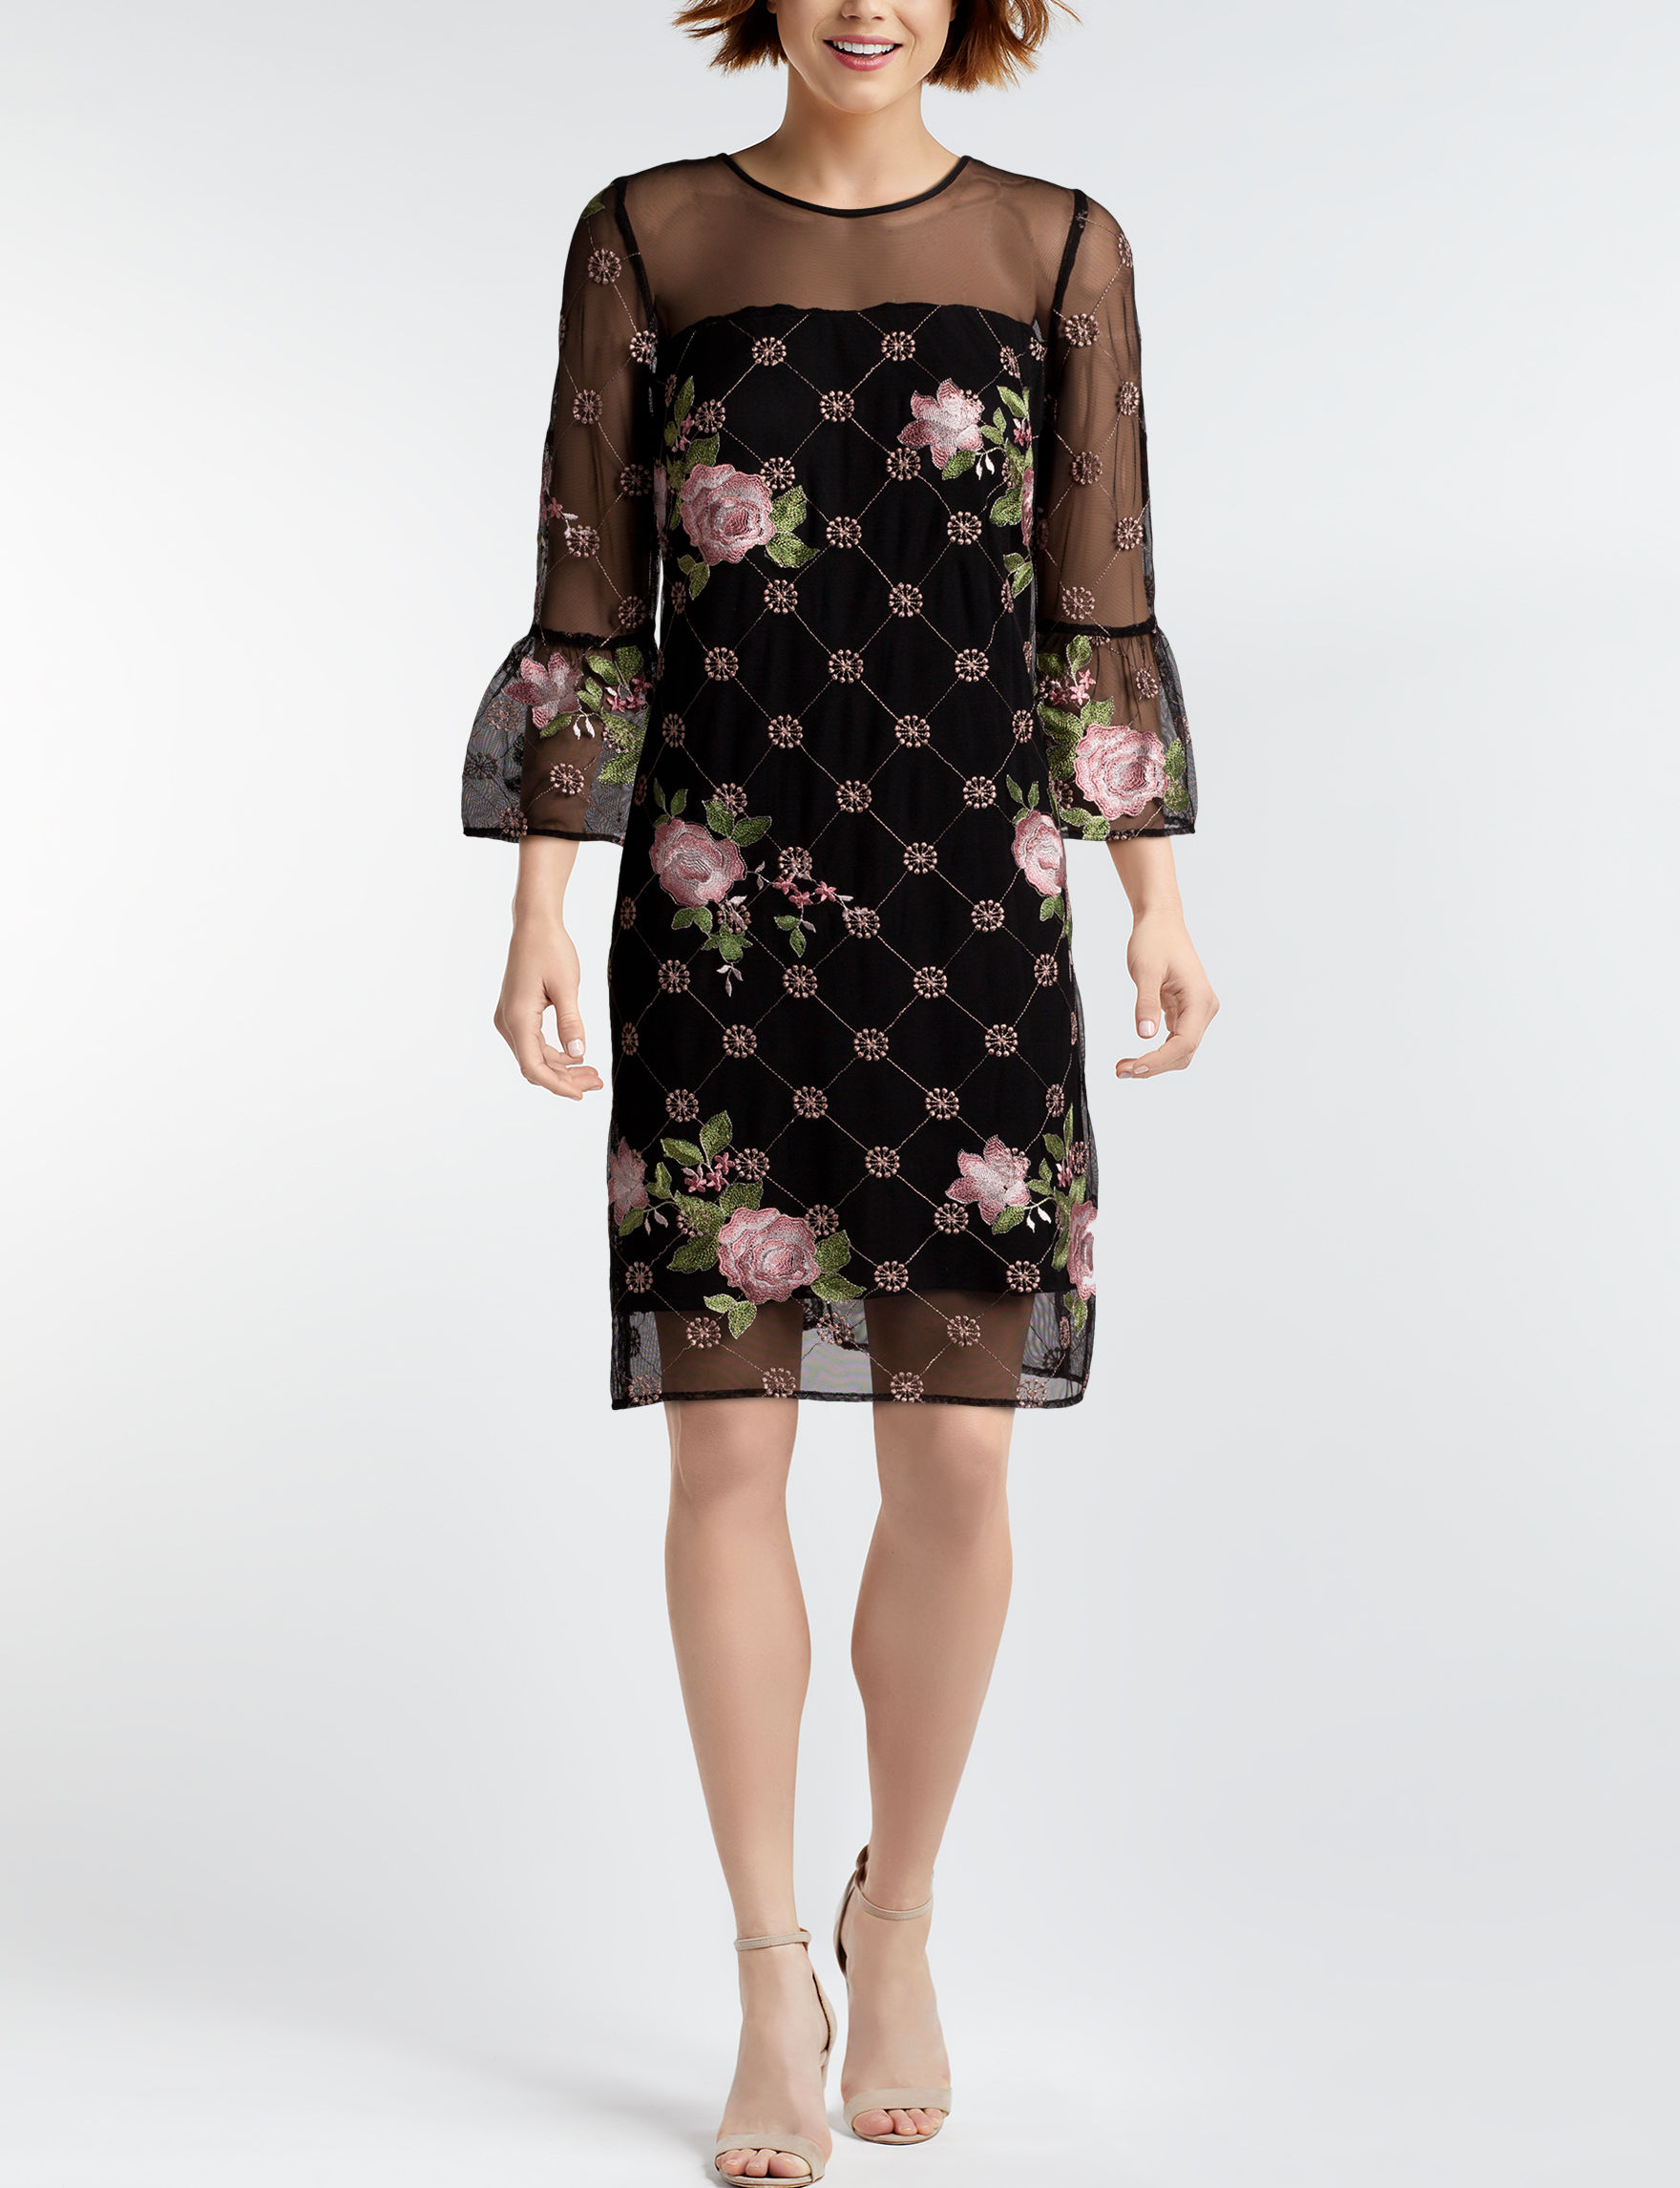 Madison Leigh Black Floral Everyday & Casual Shift Dresses